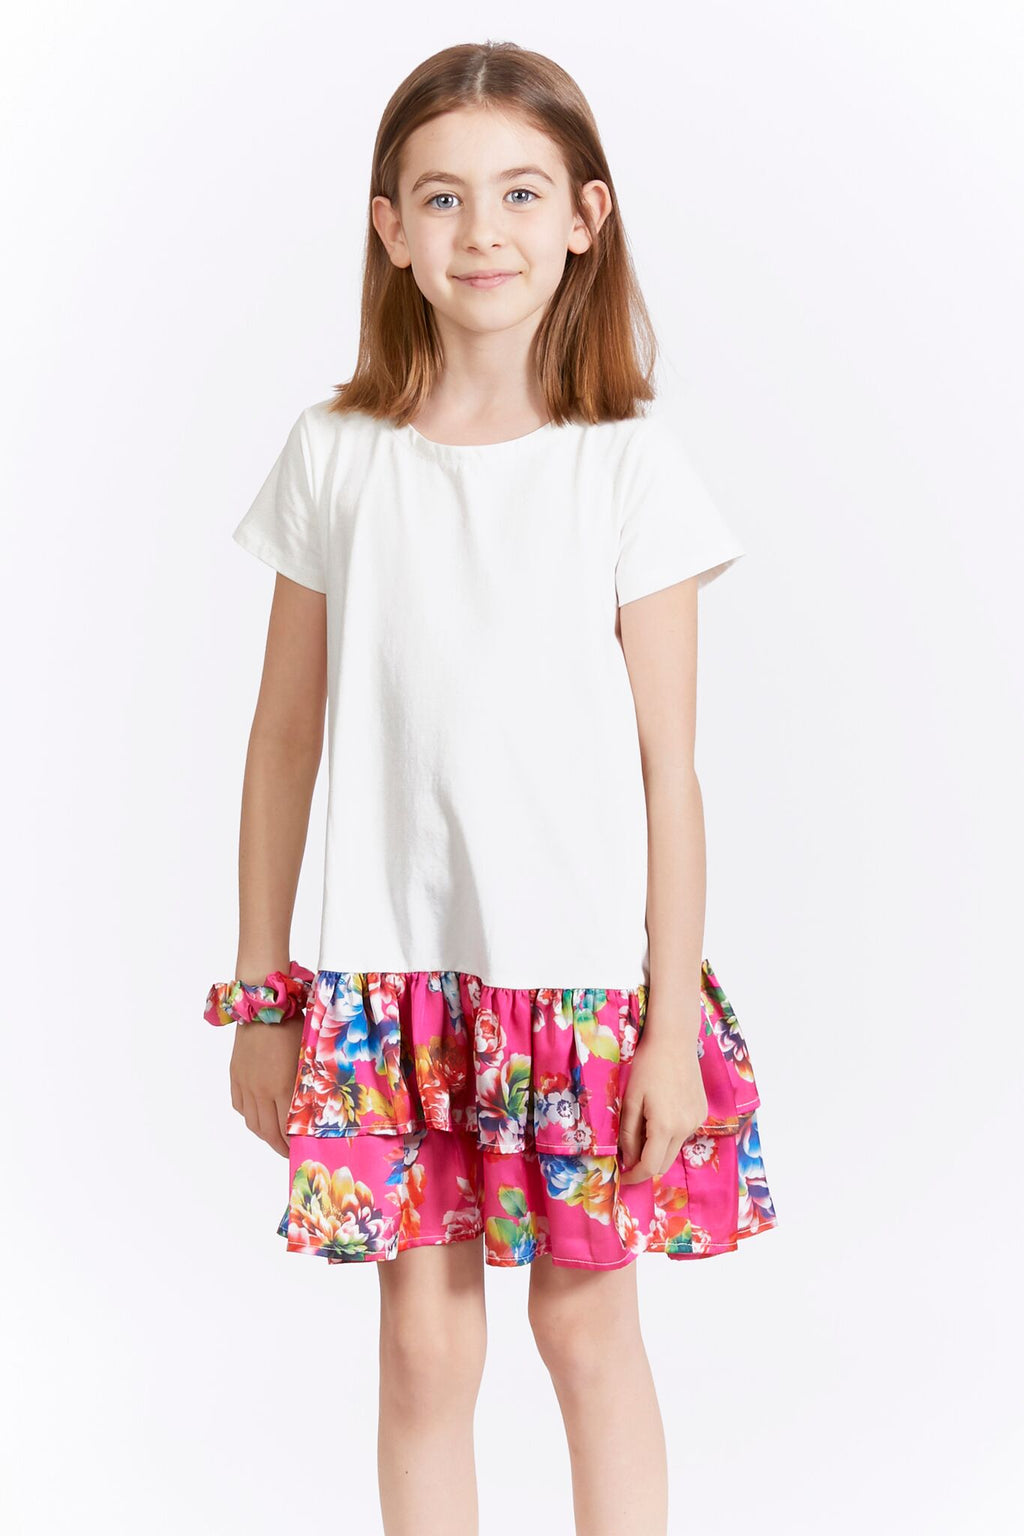 Kids T-Shirt Dress with Hot Pink Floral Ruffle Hem